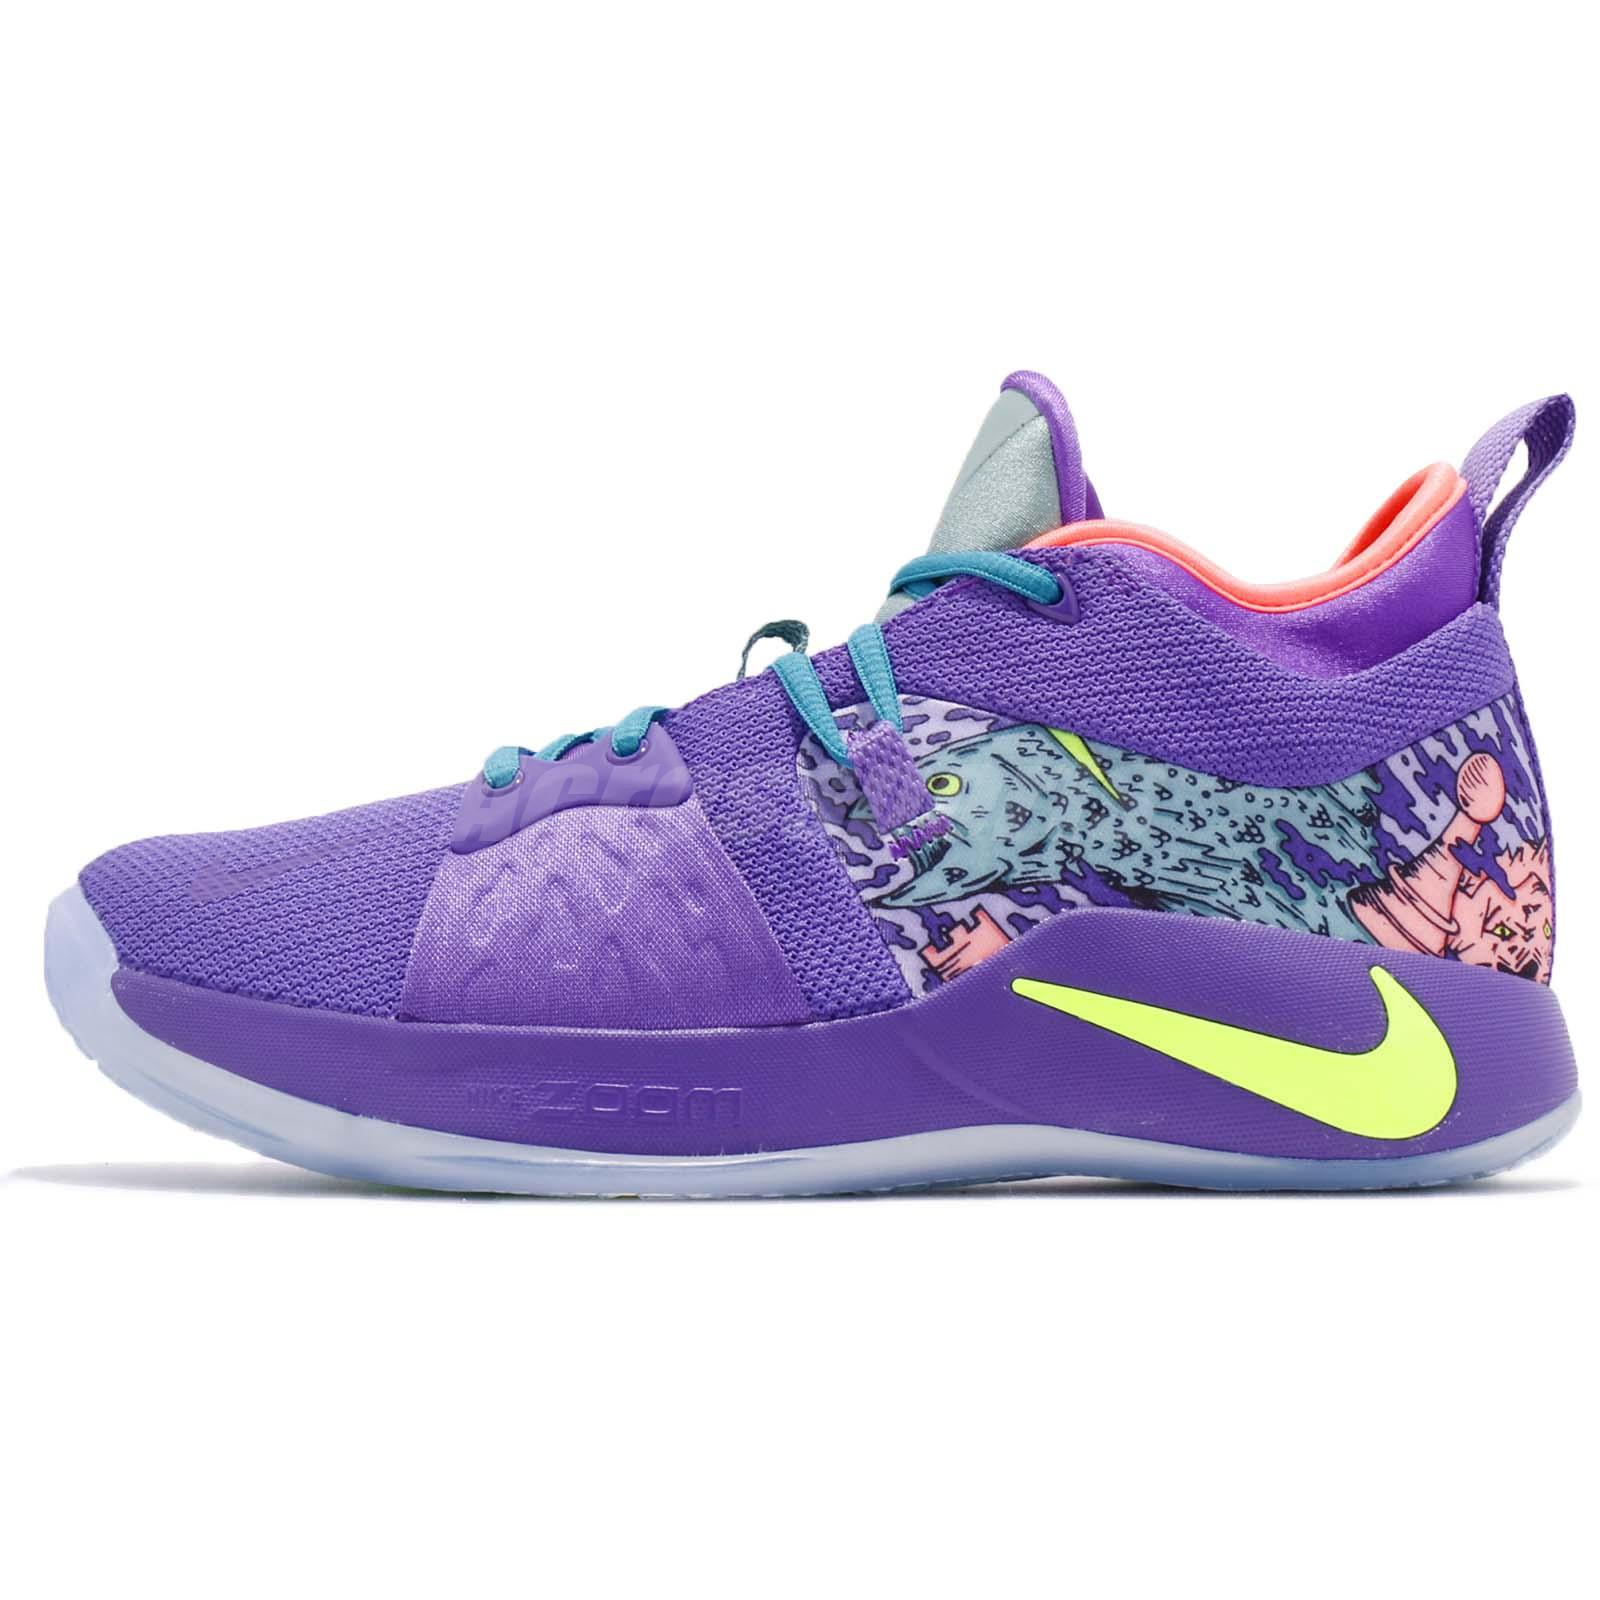 buy popular f54de 2d981 Nike PG 2 MM EP II Paul George Mamba Mentality Purple Men Basketball AO2985- 001